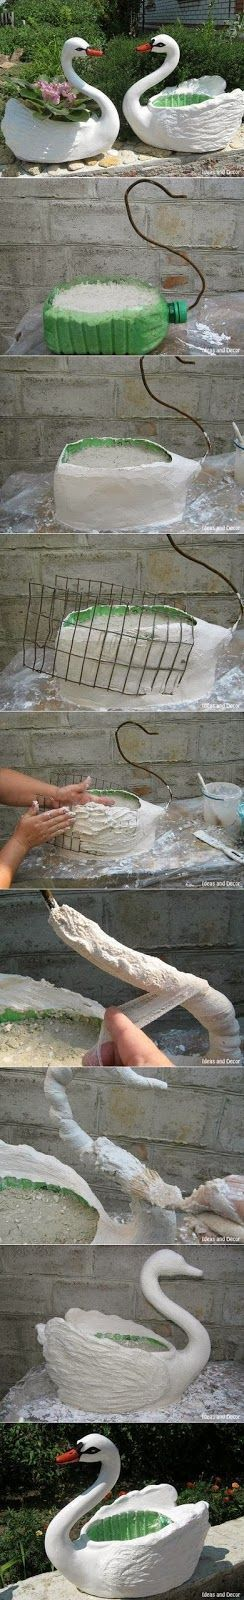 Turn Plastic Bottle into a Swan Planter garden diy planters step by step pictori